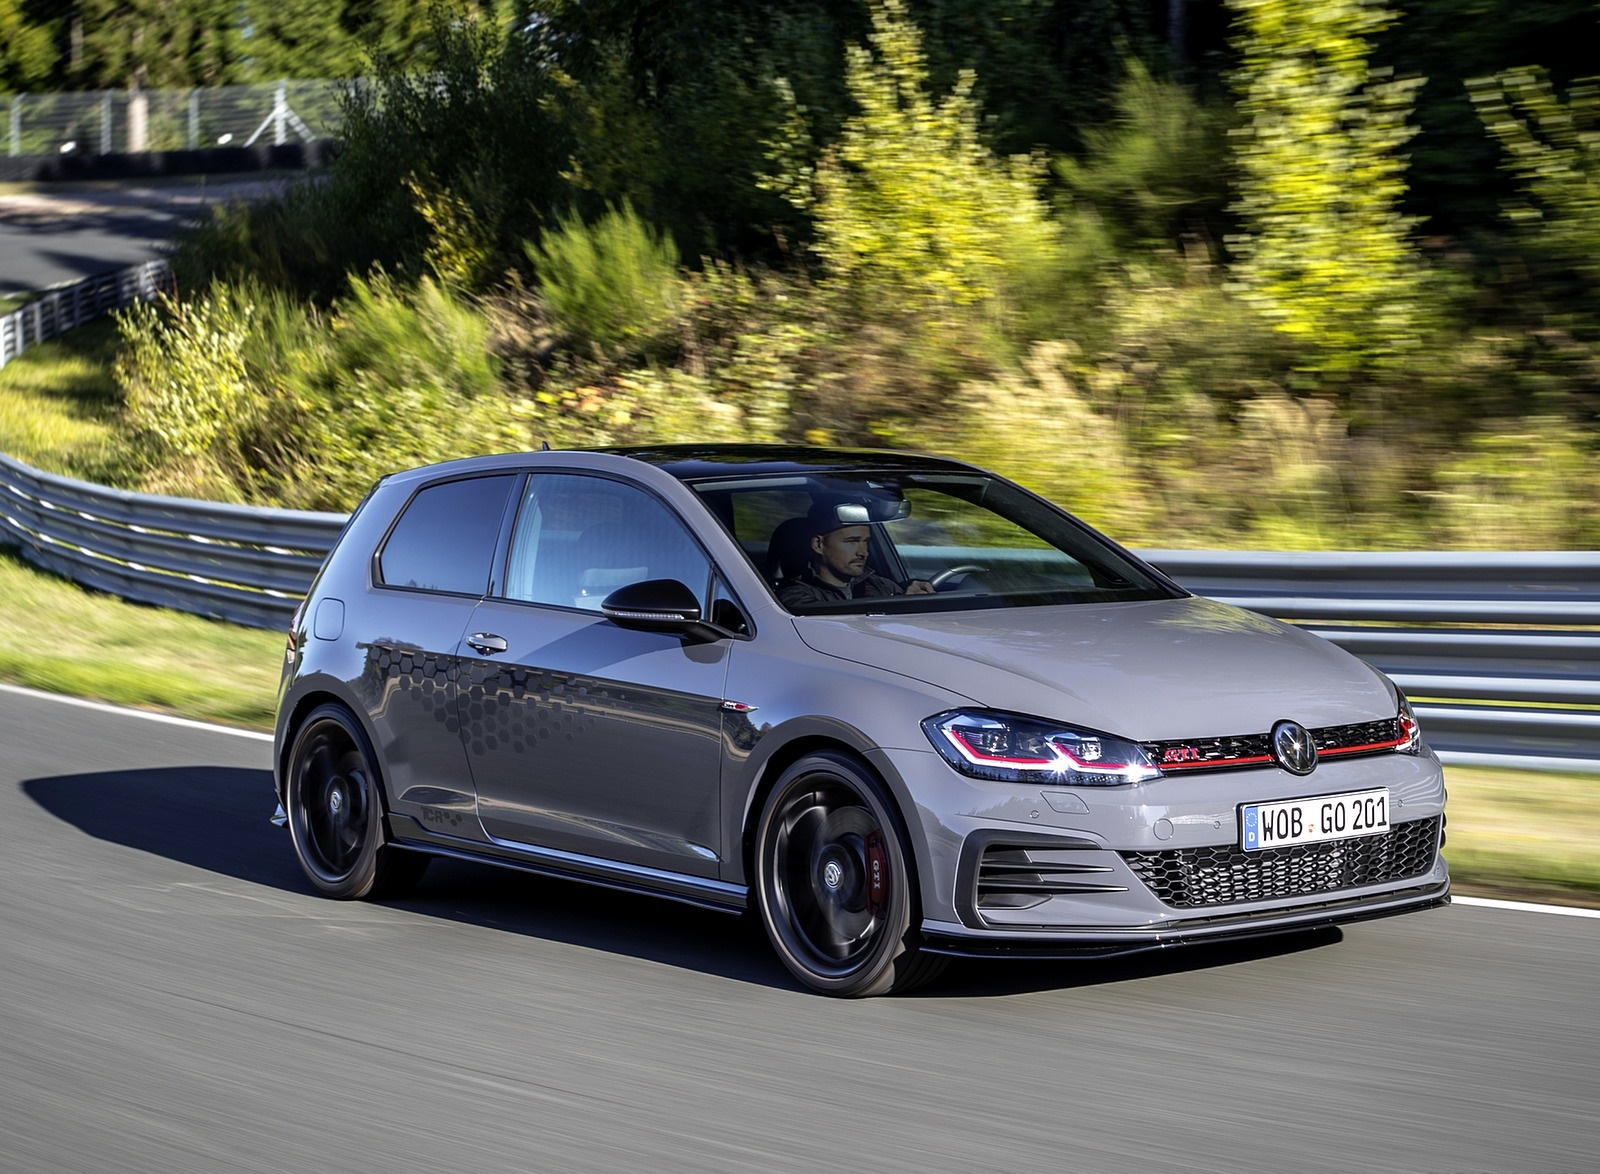 2019 Volkswagen Golf GTI TCR Front Three-Quarter Wallpapers (14)